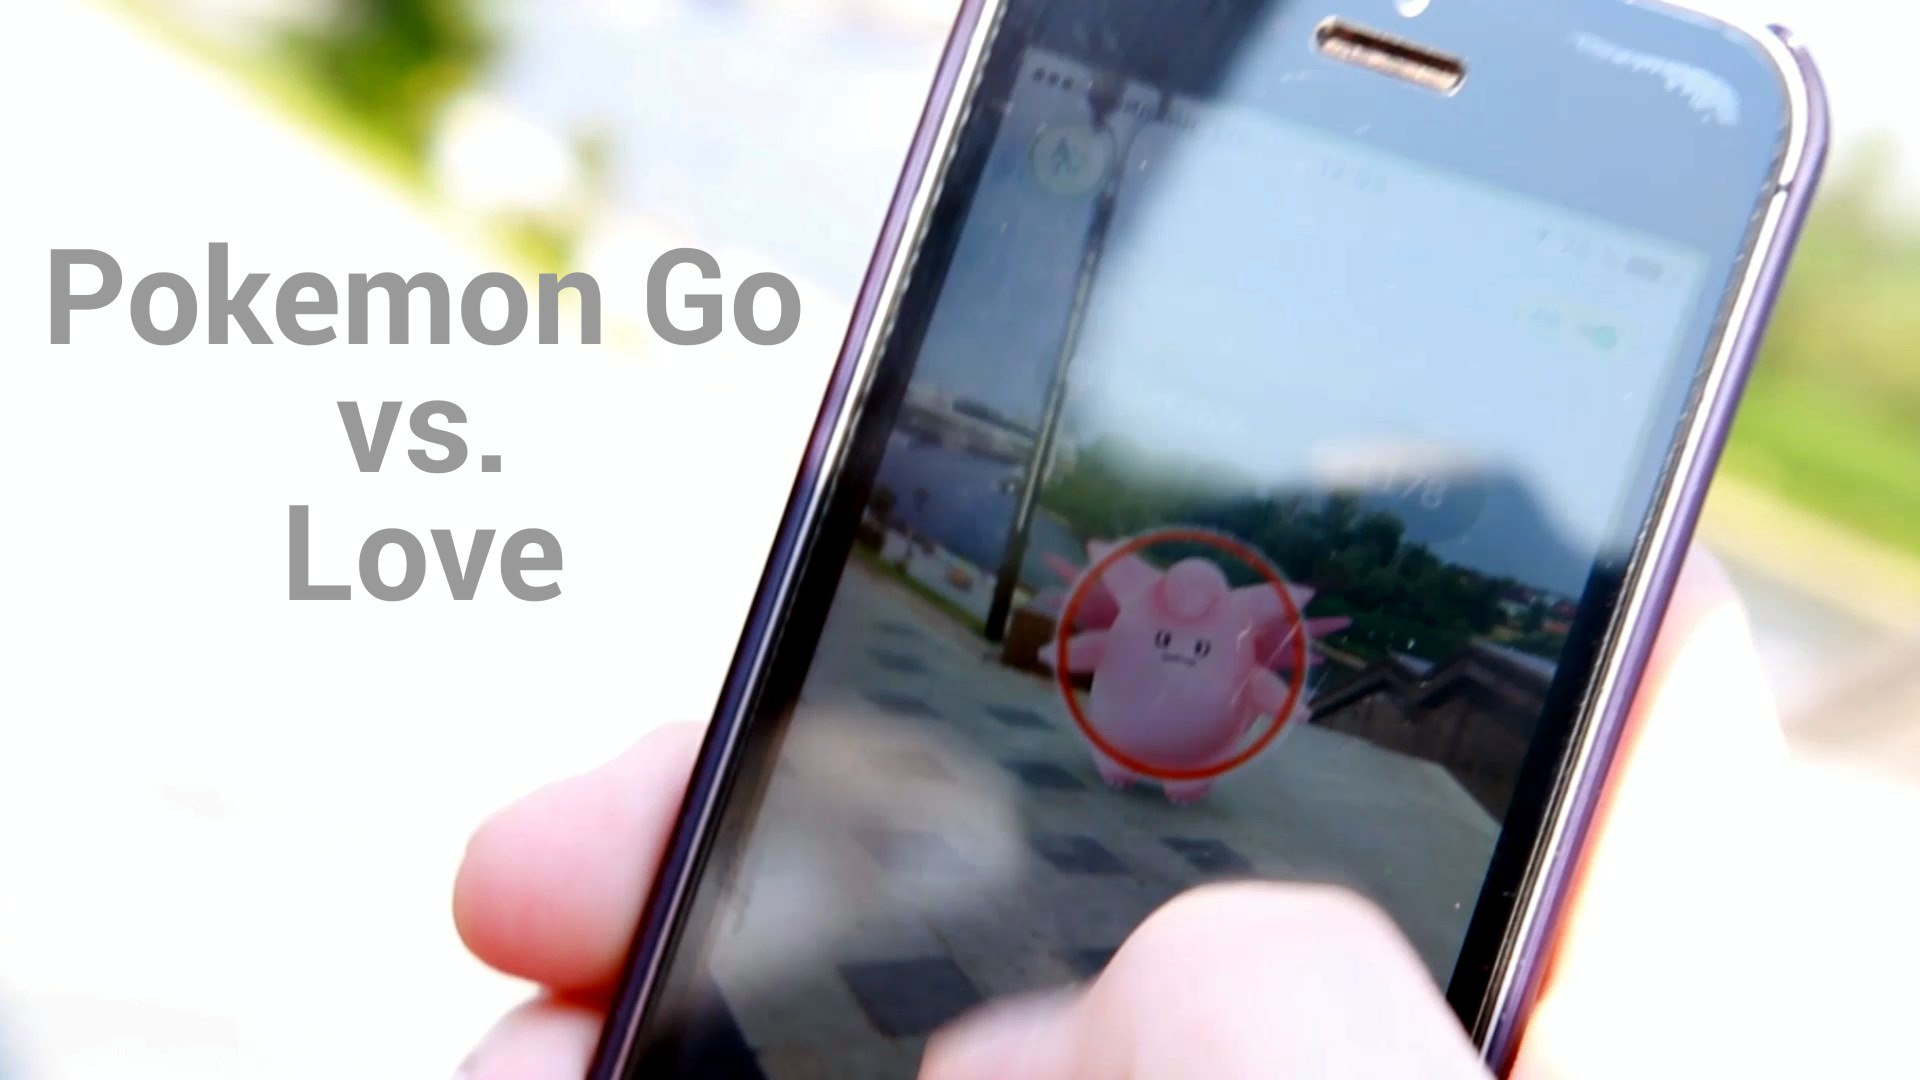 Pokemon Go vs Love